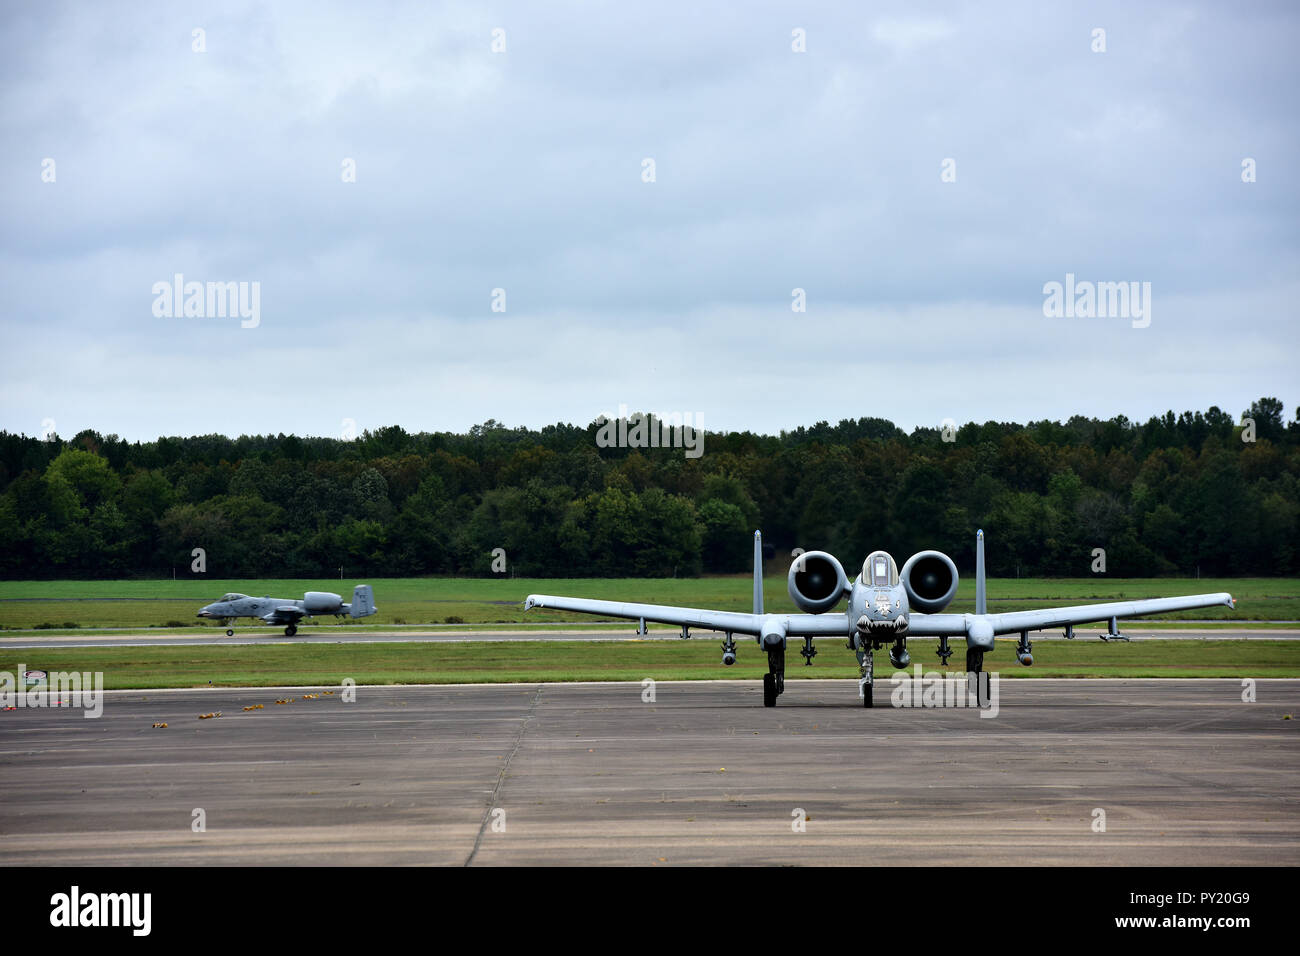 Multiple A-10 Thunderbolt IIs assigned to Moody Air Force Base, Ga., taxis to a parking spot after landing at Little Rock Air Force Base, Ark., Oct. 9, 2018. Aircraft and personnel were evacuated as a precaution to protect them from Hurricane Michael. The A-10, commonly referred to as the Warthog, has excellent maneuverability at low air speeds and altitude, and is a highly accurate and survivable weapons-delivery platform. The aircraft can loiter near battle areas for extended periods of time and operate in low ceiling and visibility conditions. (U.S. Air Force photo by Staff Sgt. Jeremy McGu Stock Photo